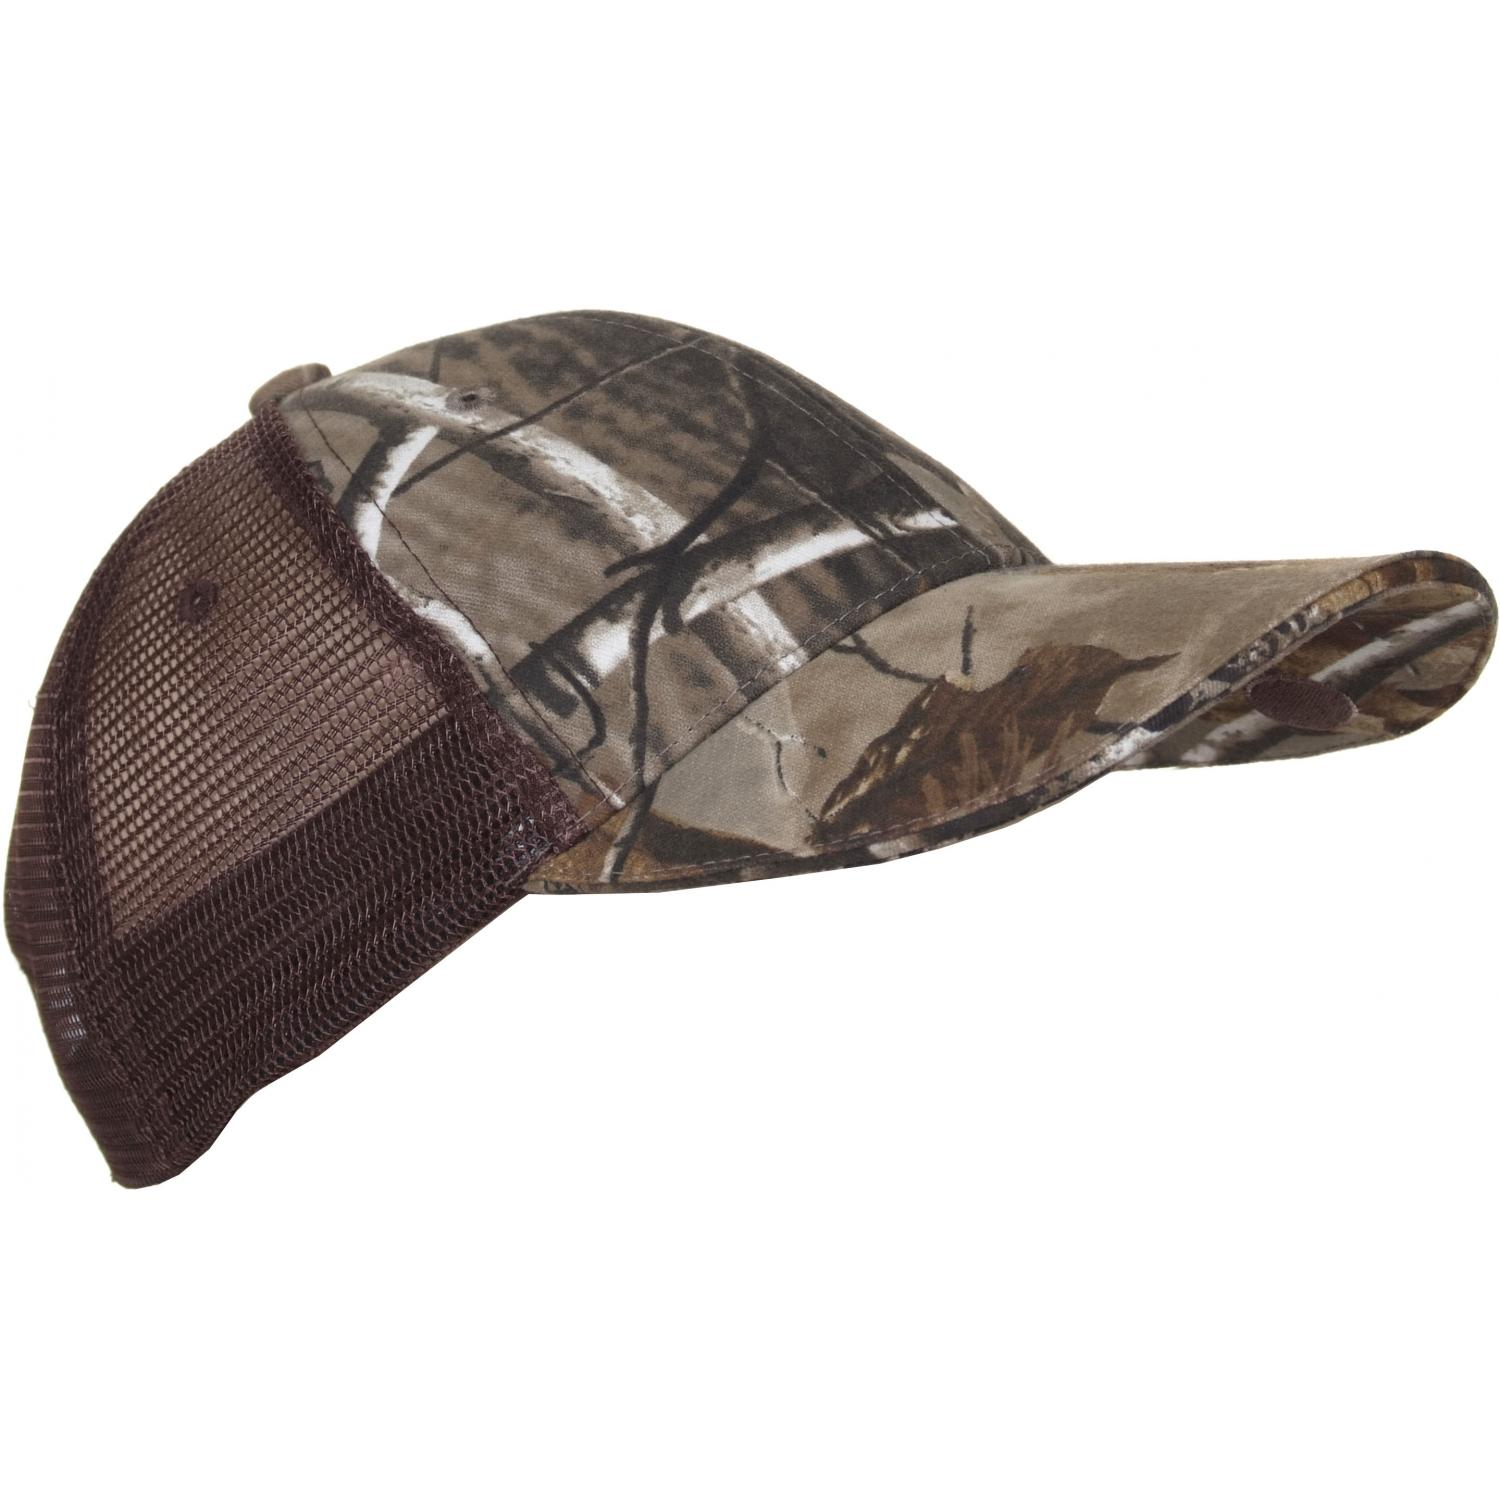 Panther Vision Lighted Mesh Back Structured Hat W/ 4 LED Lights - Real Tree AP Grey Camo